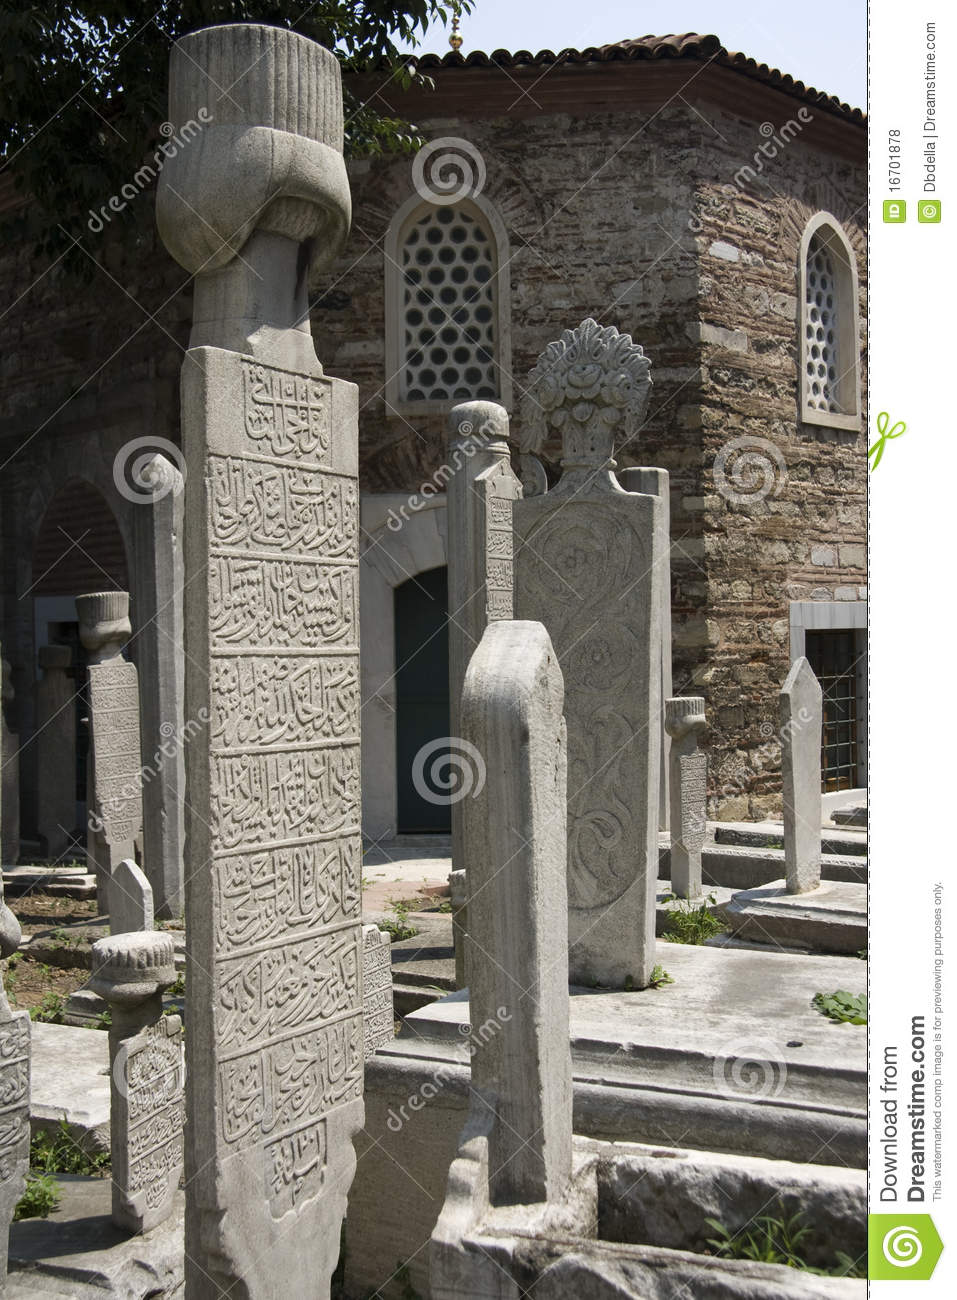 Istanbul - Old Islamic Tombstones